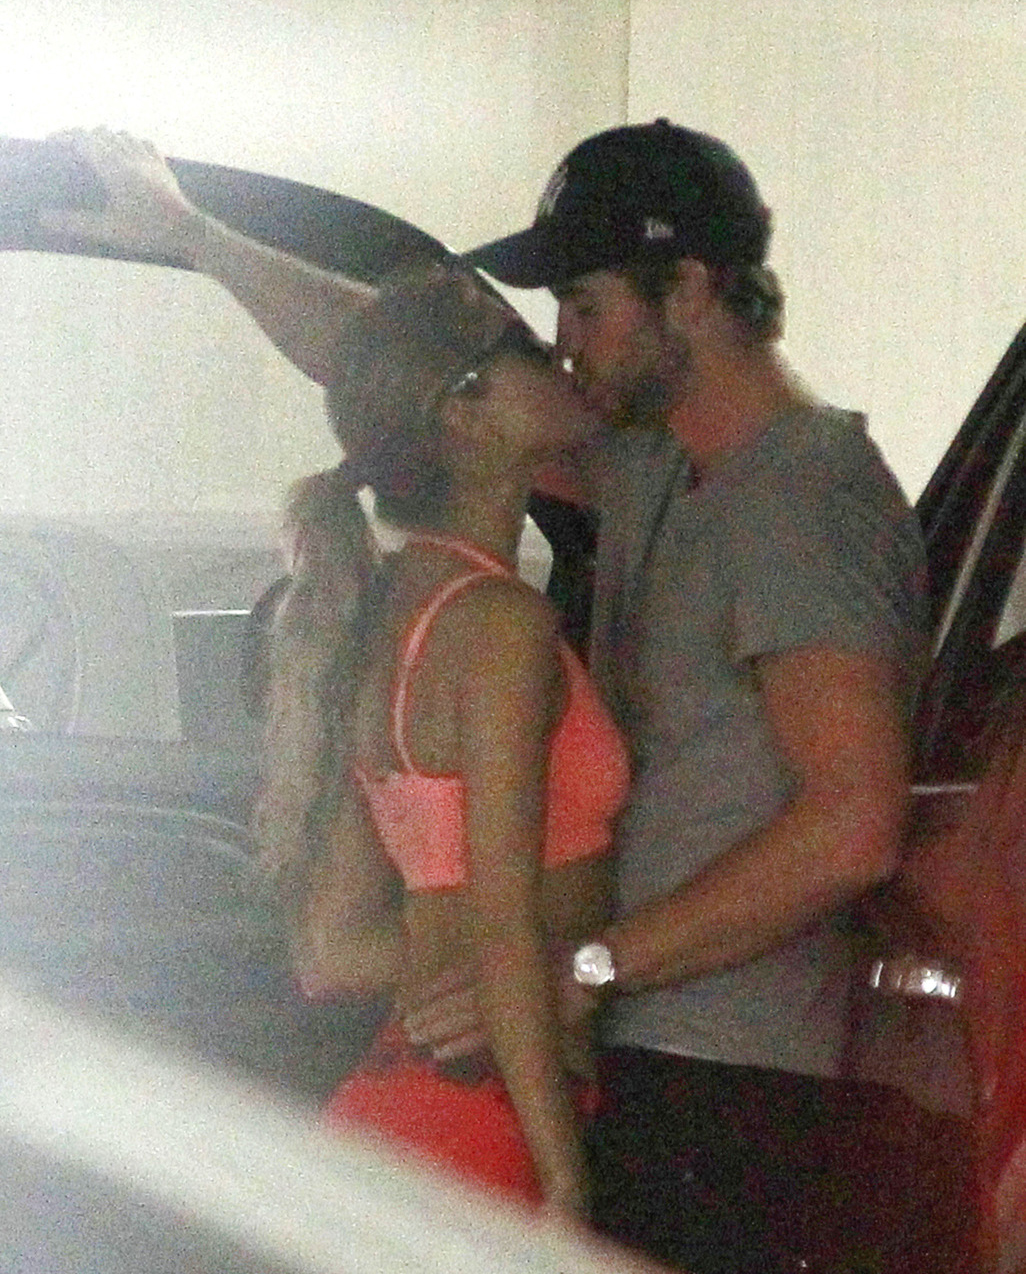 Liam Hemsworth And Eiza Gonzalez Look Spry: Sexy...